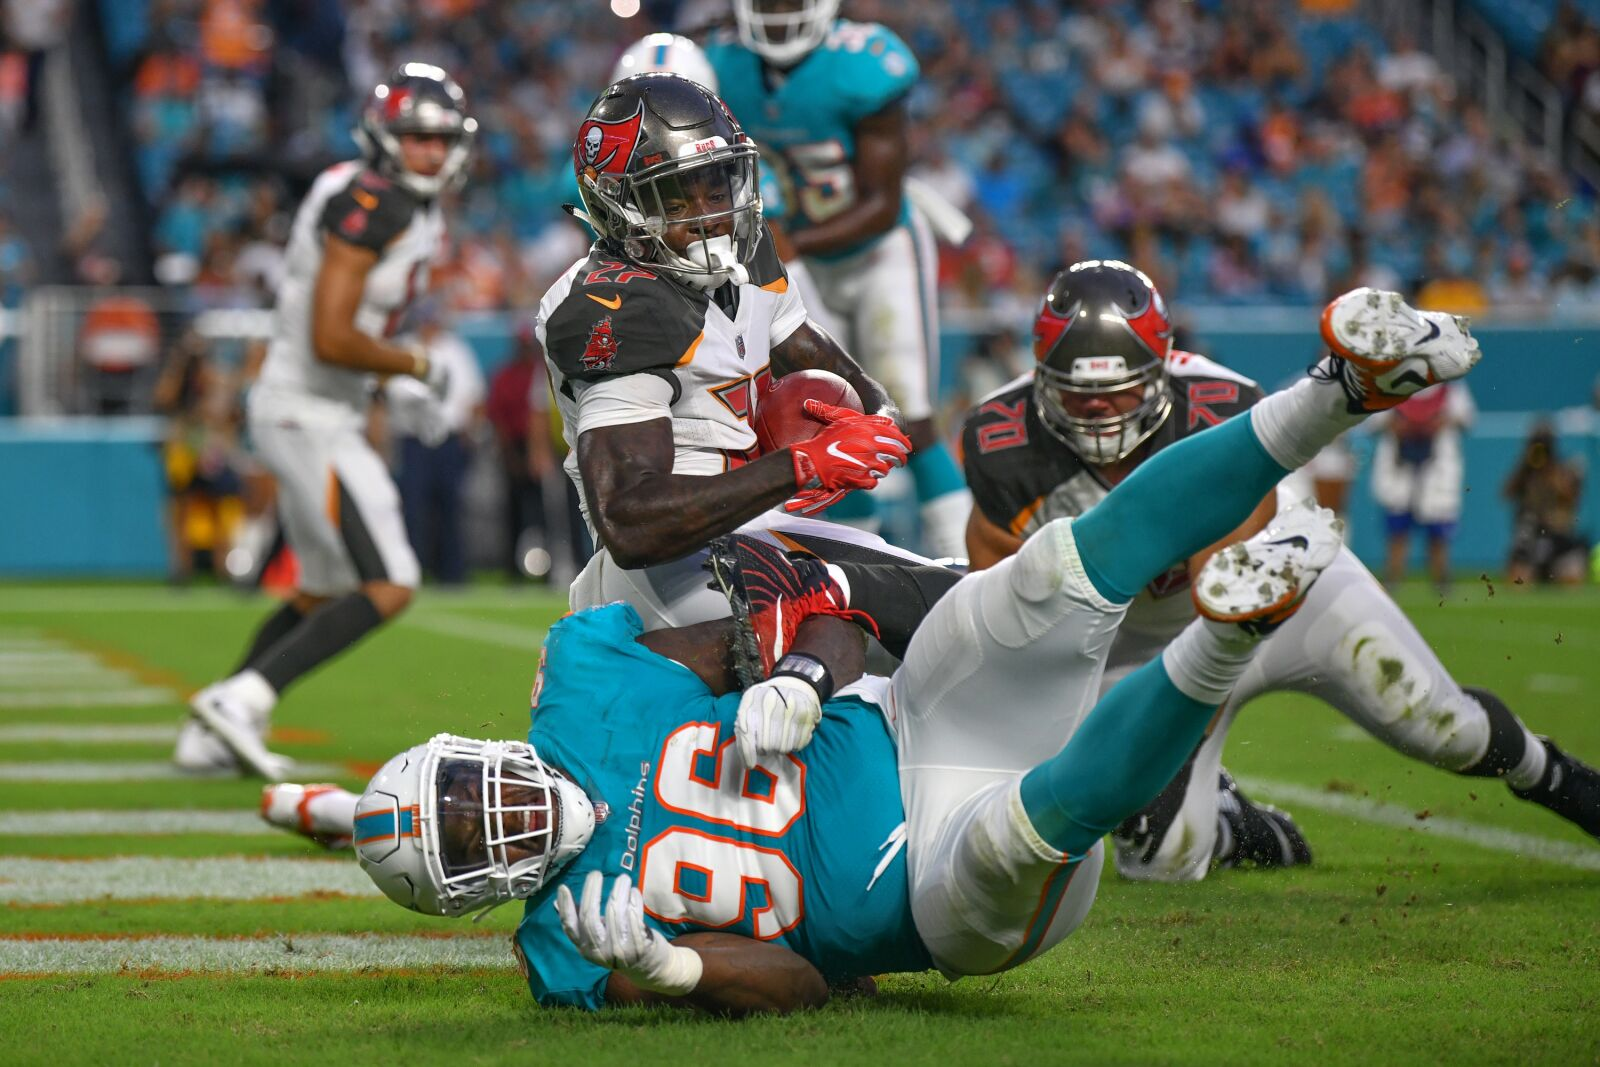 What does Madden think? preseason week 2 – Dolphins at Buccaneers